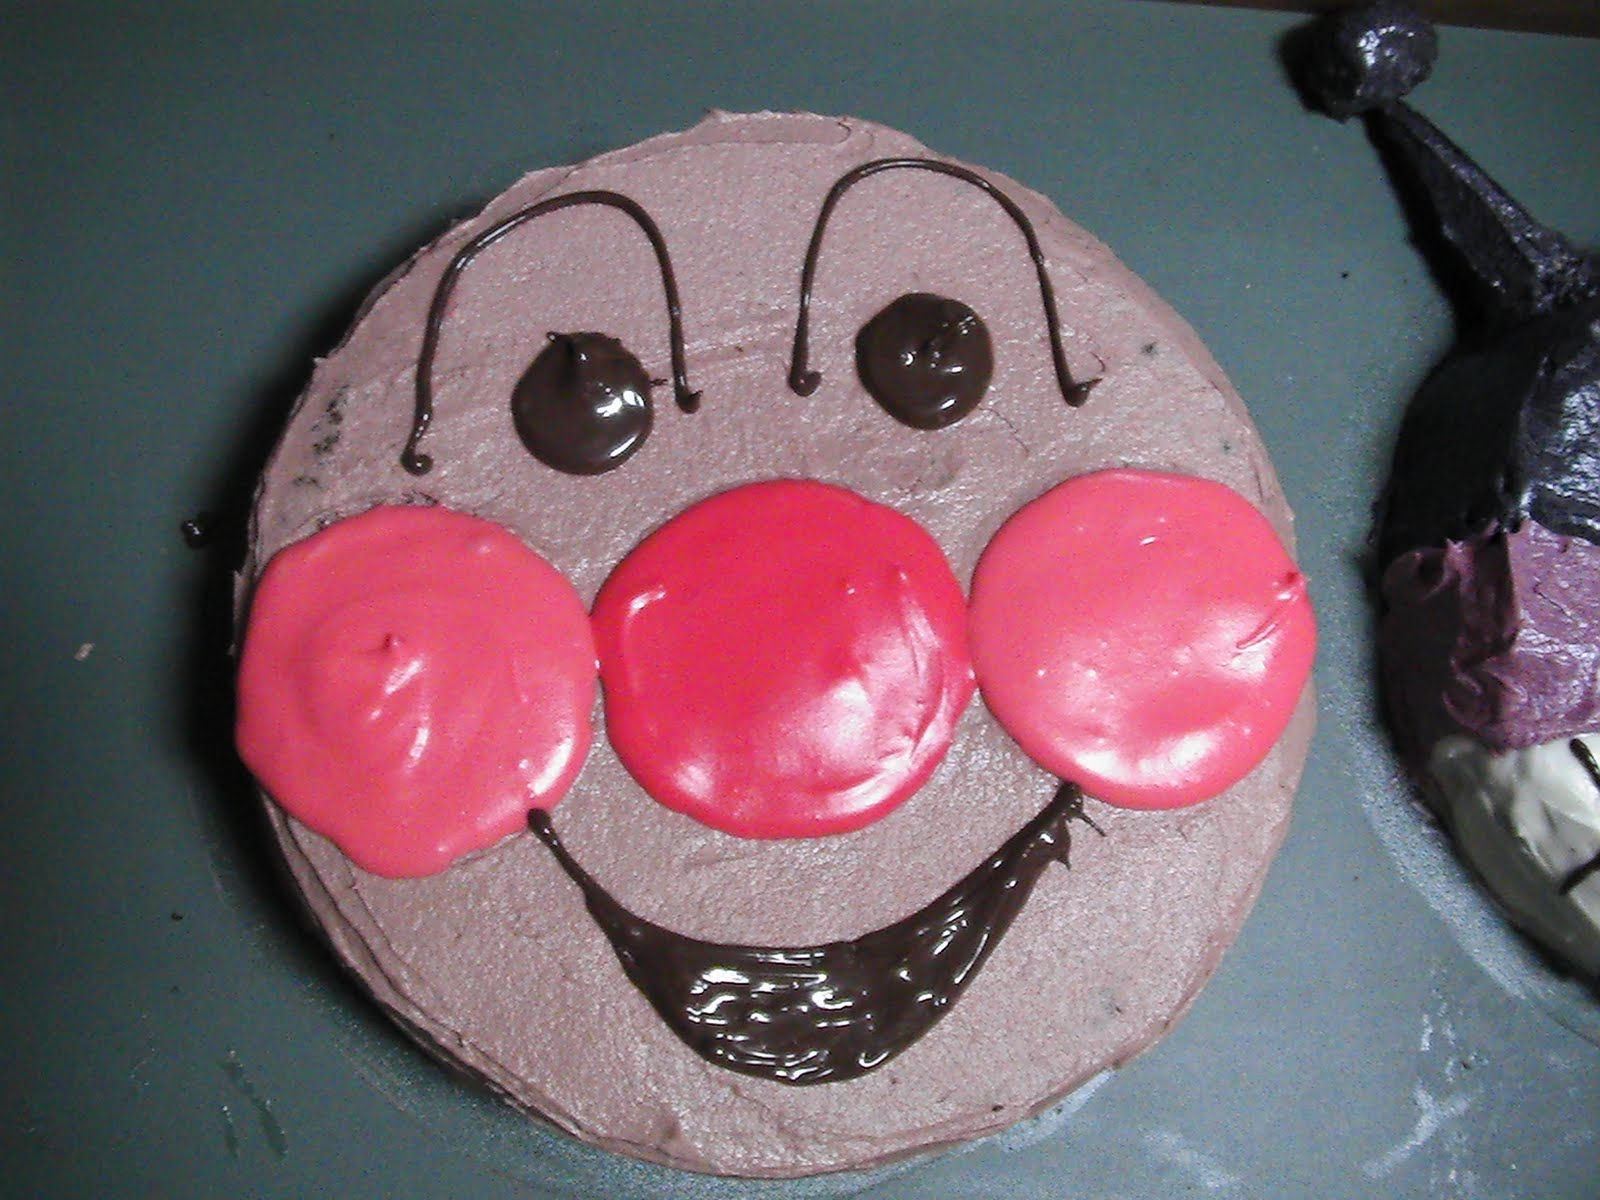 Anpanman and baikinman e 2 cakes blog for Anpanman cake decoration